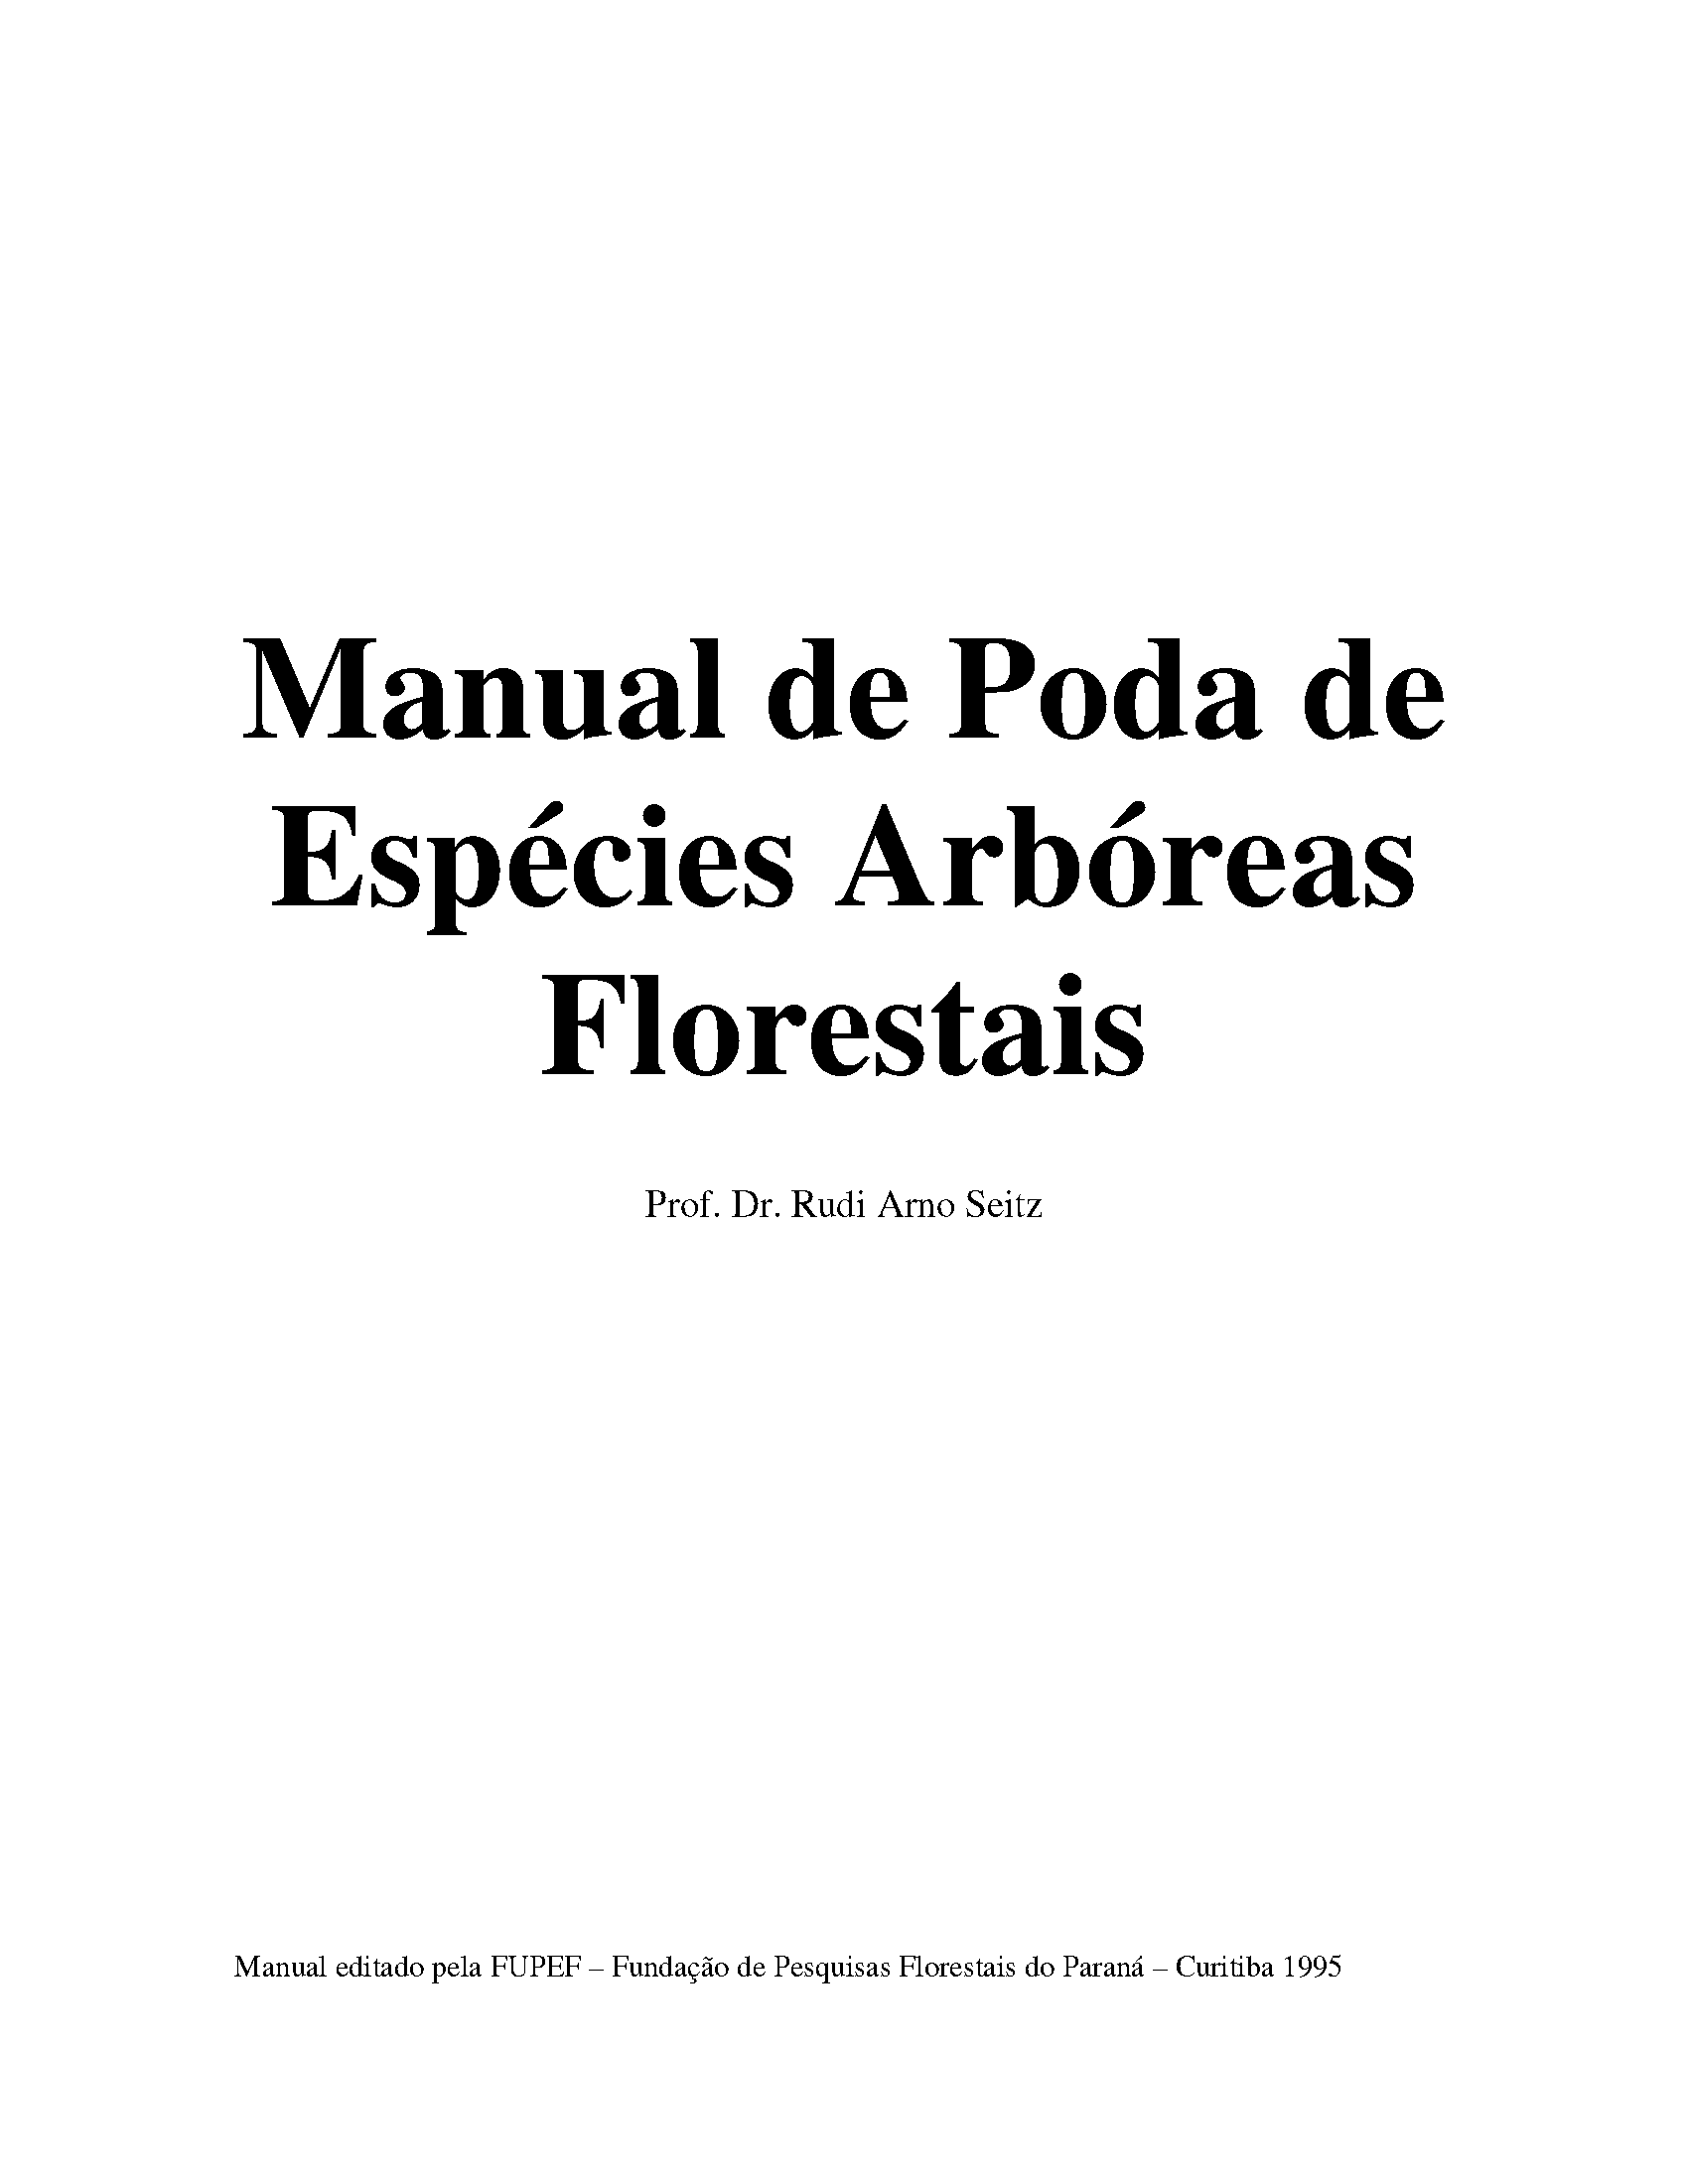 Capa da Manual de poda de espécies arbóreas florestais